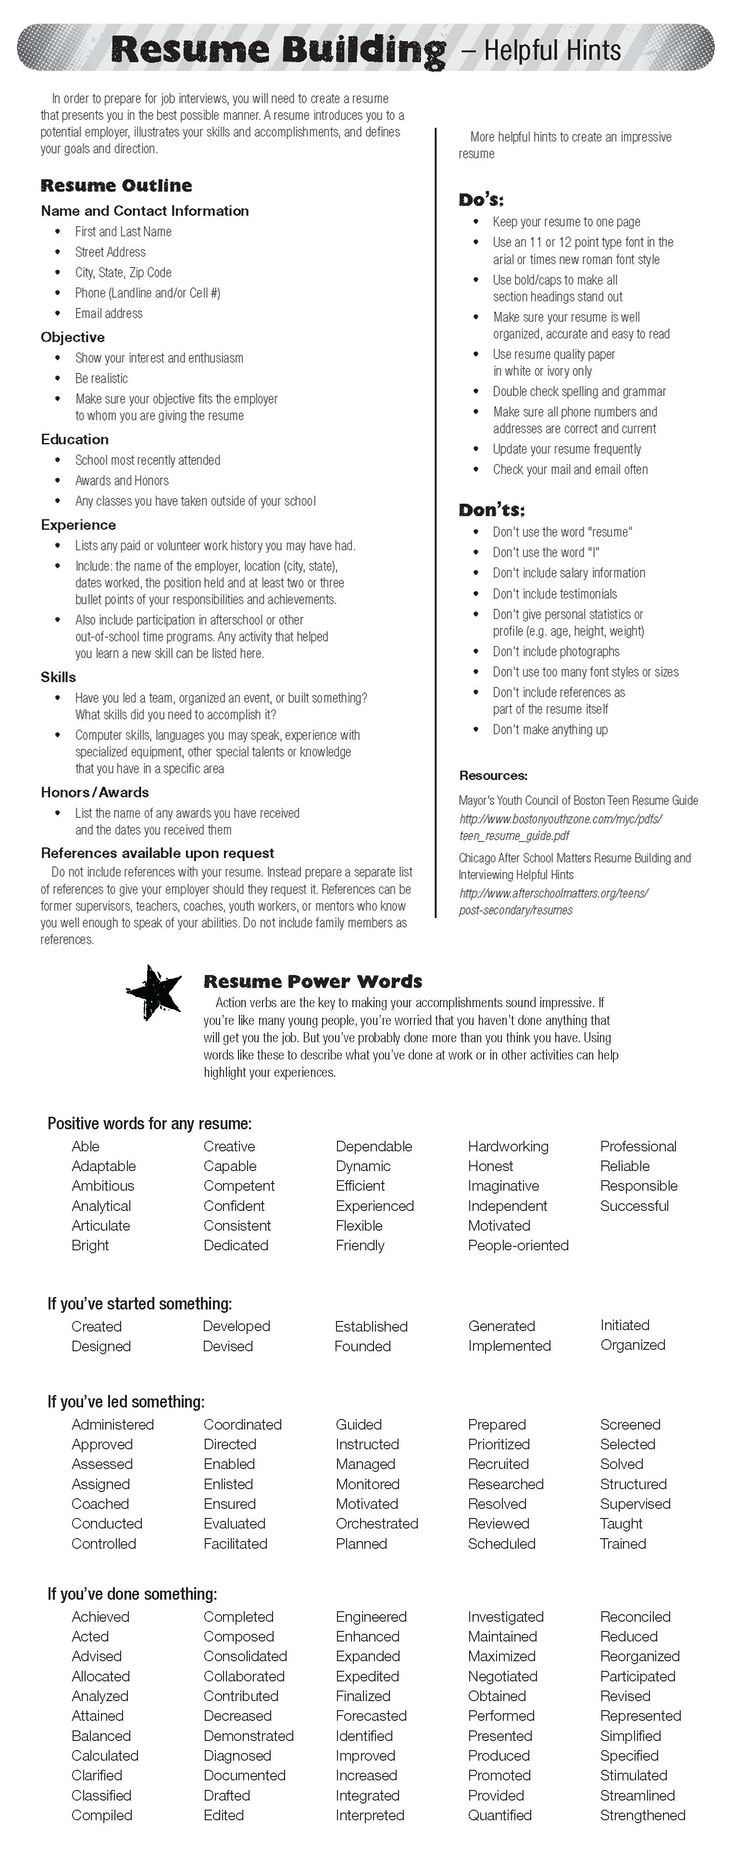 Opposenewapstandardsus  Marvelous  Ideas About Resume On Pinterest  Cv Format Resume Cv And  With Extraordinary  Ideas About Resume On Pinterest  Cv Format Resume Cv And Resume Templates With Captivating How To Make Your Own Resume Also Pages Resume Templates Mac In Addition Teacher Skills Resume And How To Do A Resume On Microsoft Word As Well As Interests Resume Additionally Should You Staple Your Resume From Pinterestcom With Opposenewapstandardsus  Extraordinary  Ideas About Resume On Pinterest  Cv Format Resume Cv And  With Captivating  Ideas About Resume On Pinterest  Cv Format Resume Cv And Resume Templates And Marvelous How To Make Your Own Resume Also Pages Resume Templates Mac In Addition Teacher Skills Resume From Pinterestcom